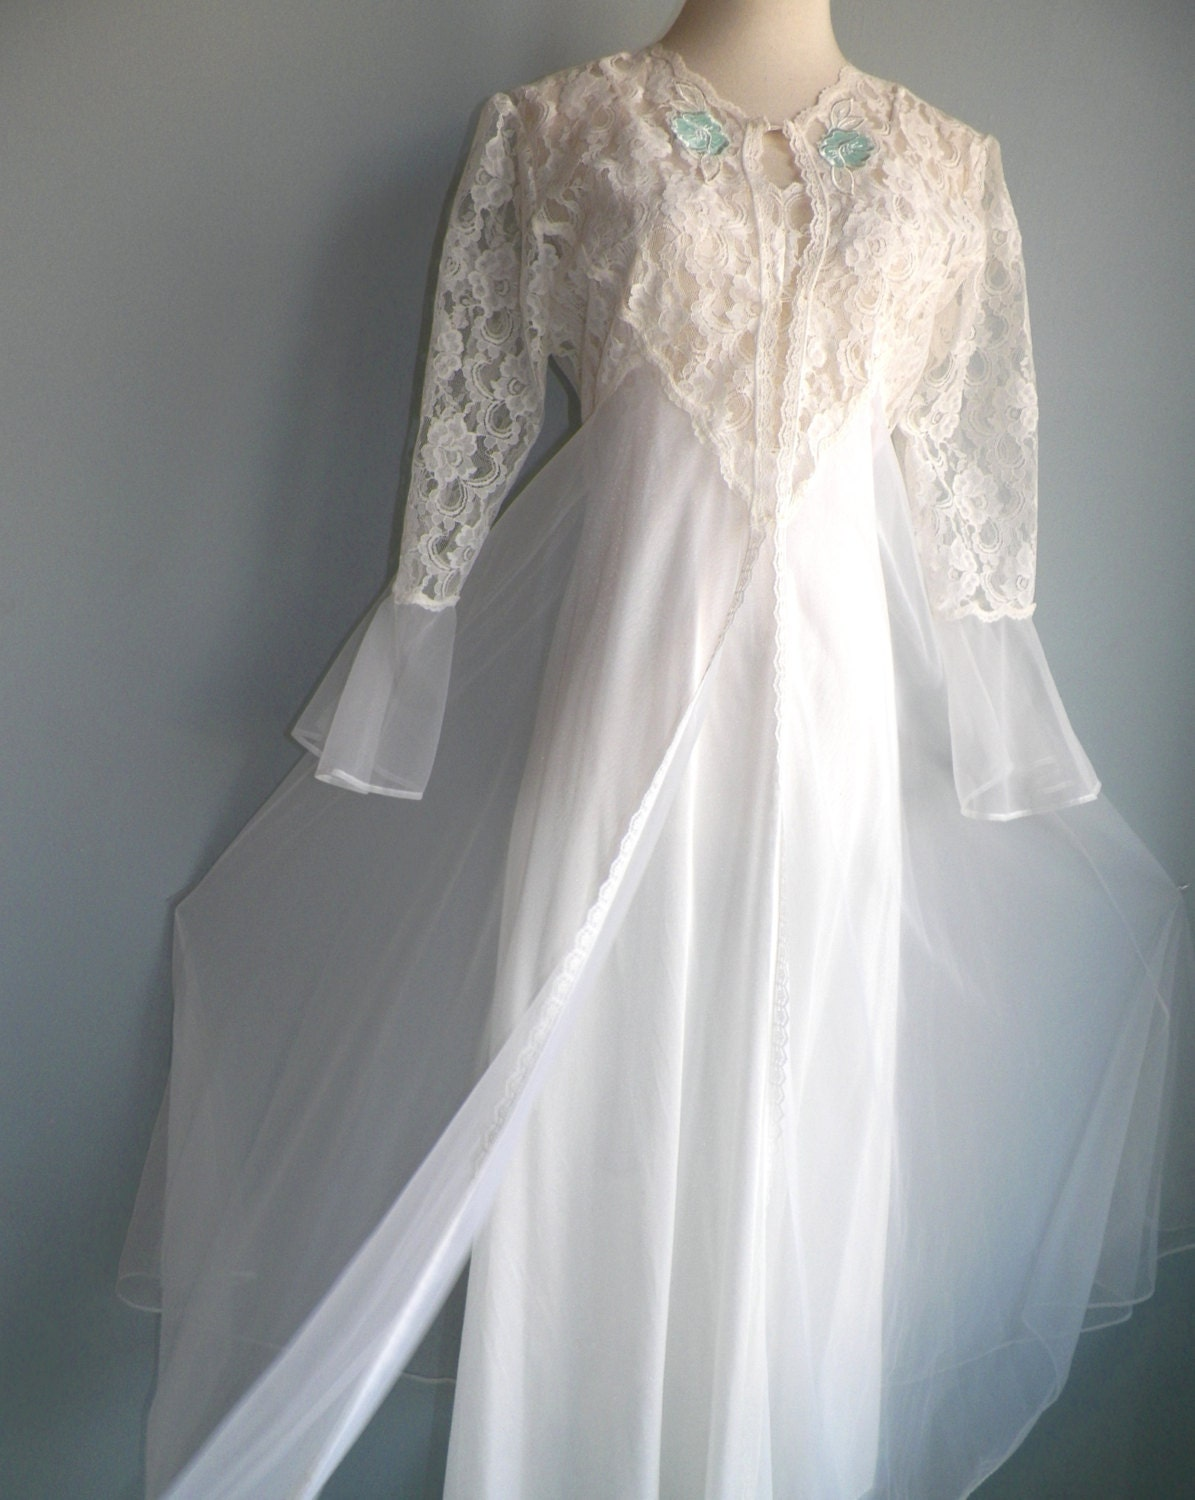 Superb White Lace Nylon Chiffon Negligee Nightgown And Robe